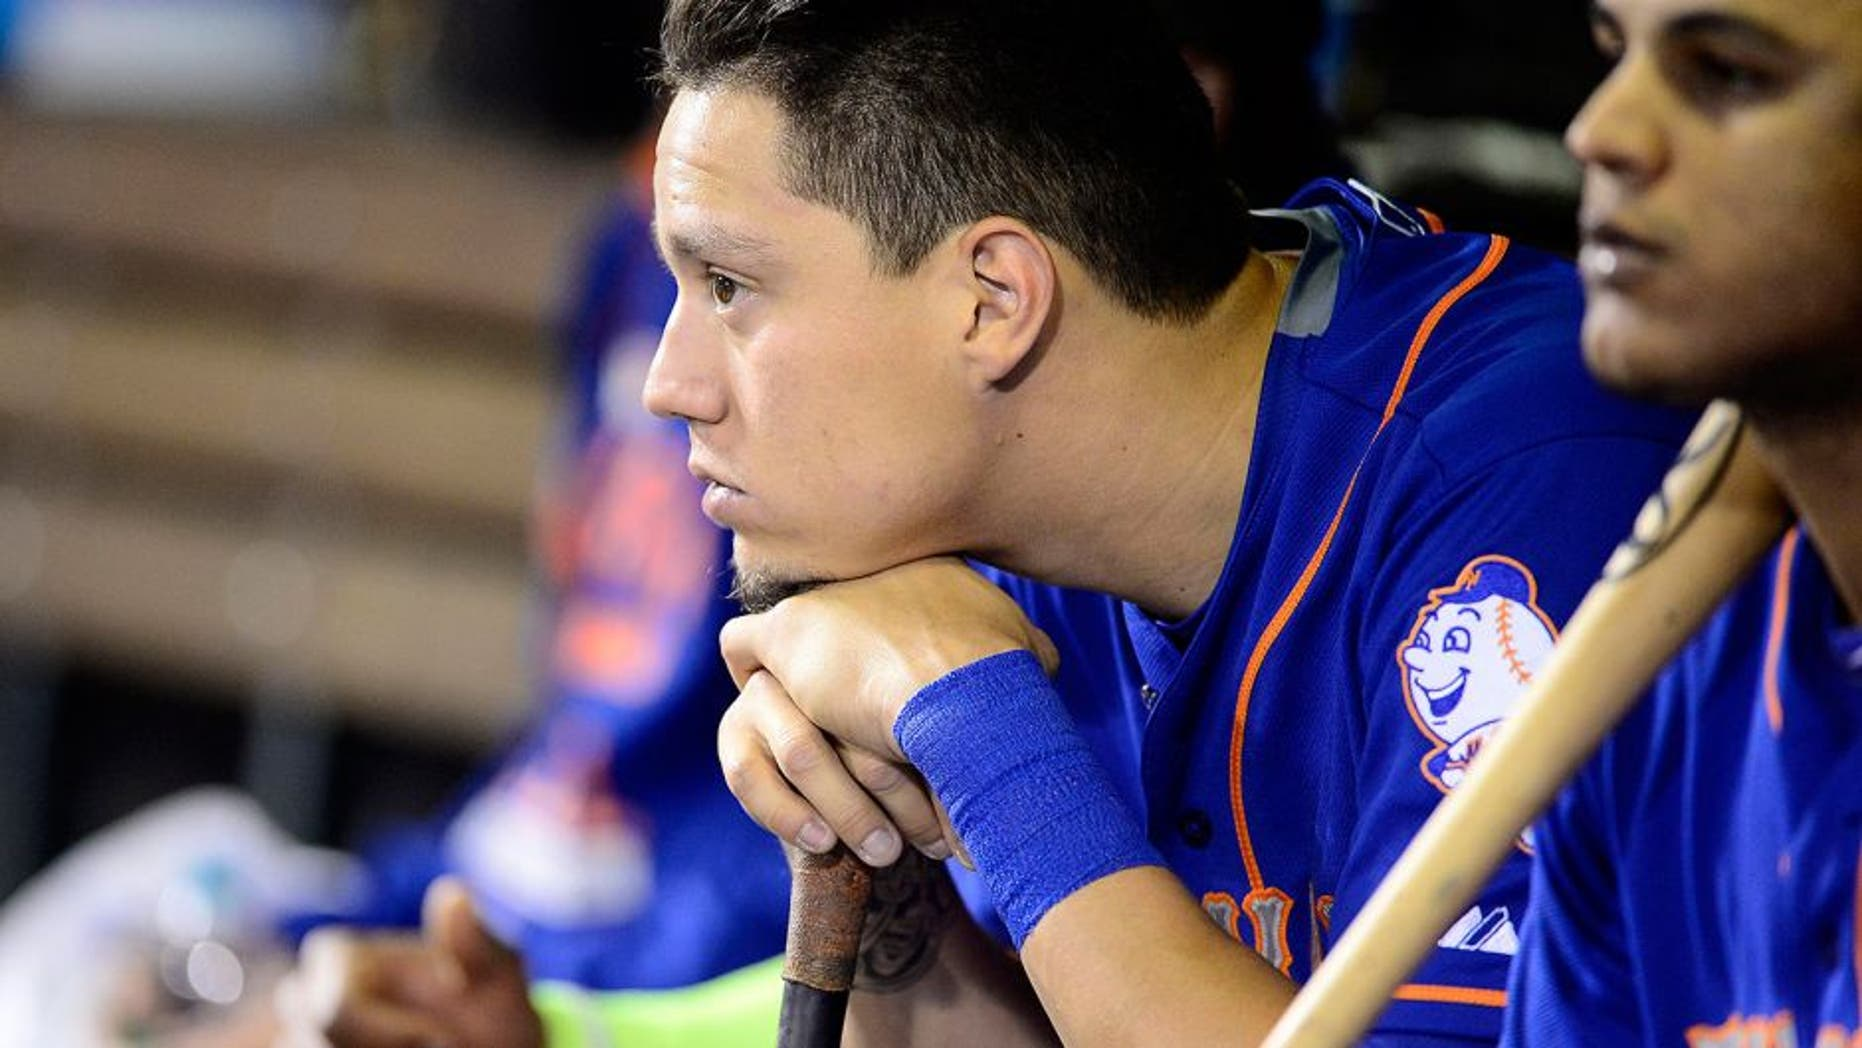 Aug 22, 2015; Denver, CO, USA; New York Mets shortstop Wilmer Flores (4) in his dugout in the ninth inning against the Colorado Rockies at Coors Field. The Mets defeated the Rockies 14-9. Mandatory Credit: Ron Chenoy-USA TODAY Sports